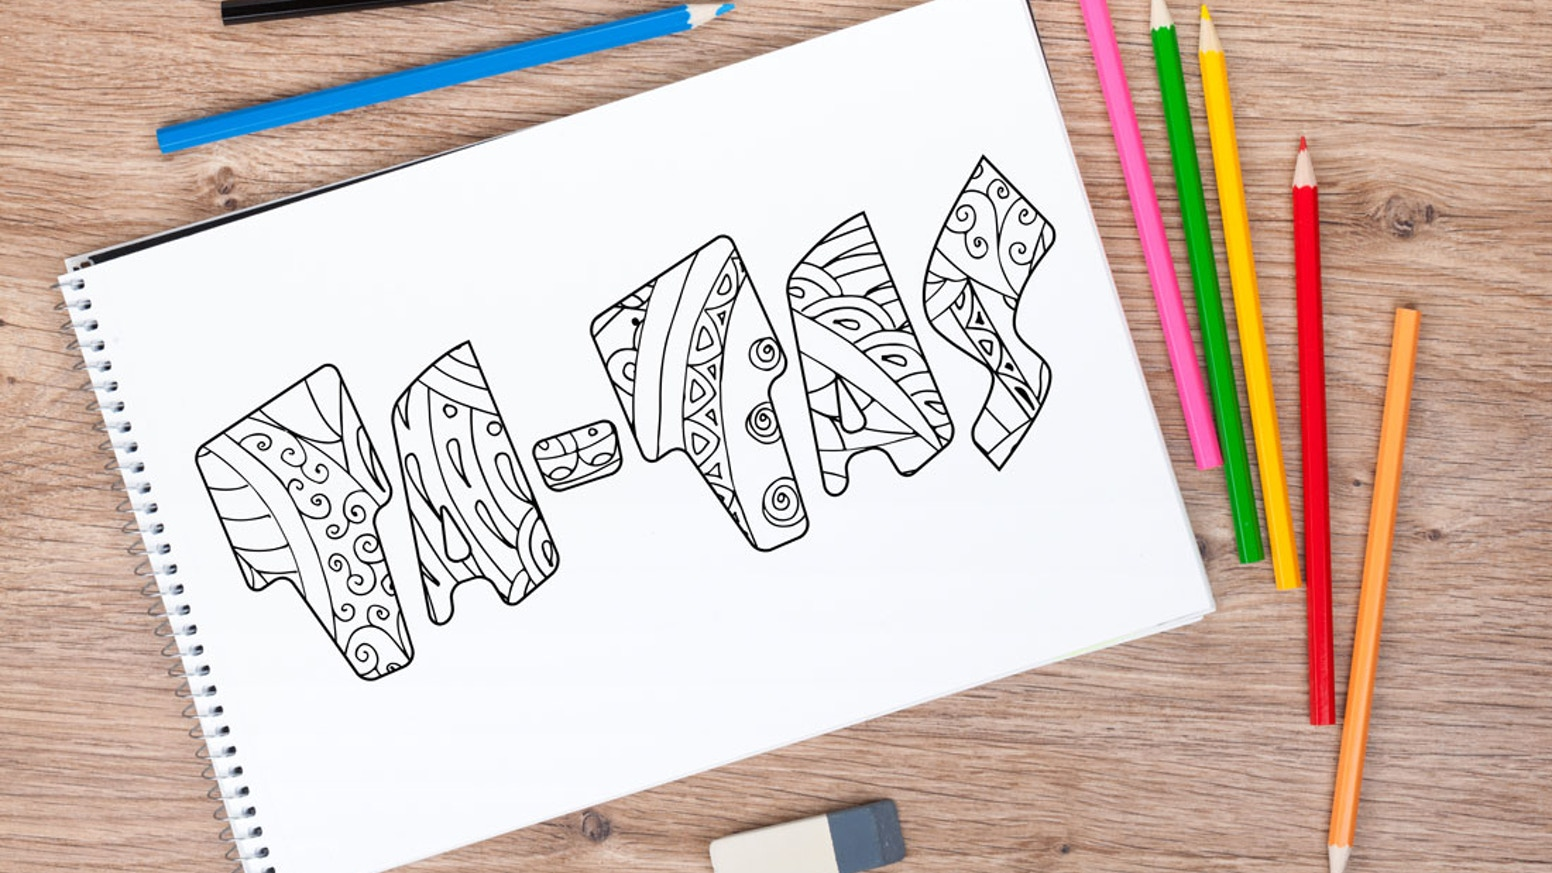 Fancy swear words coloring book - A Fancy Sexy Swear Word Coloring Book For Adults For The Days When You Are Want To Feel And Color Sexy